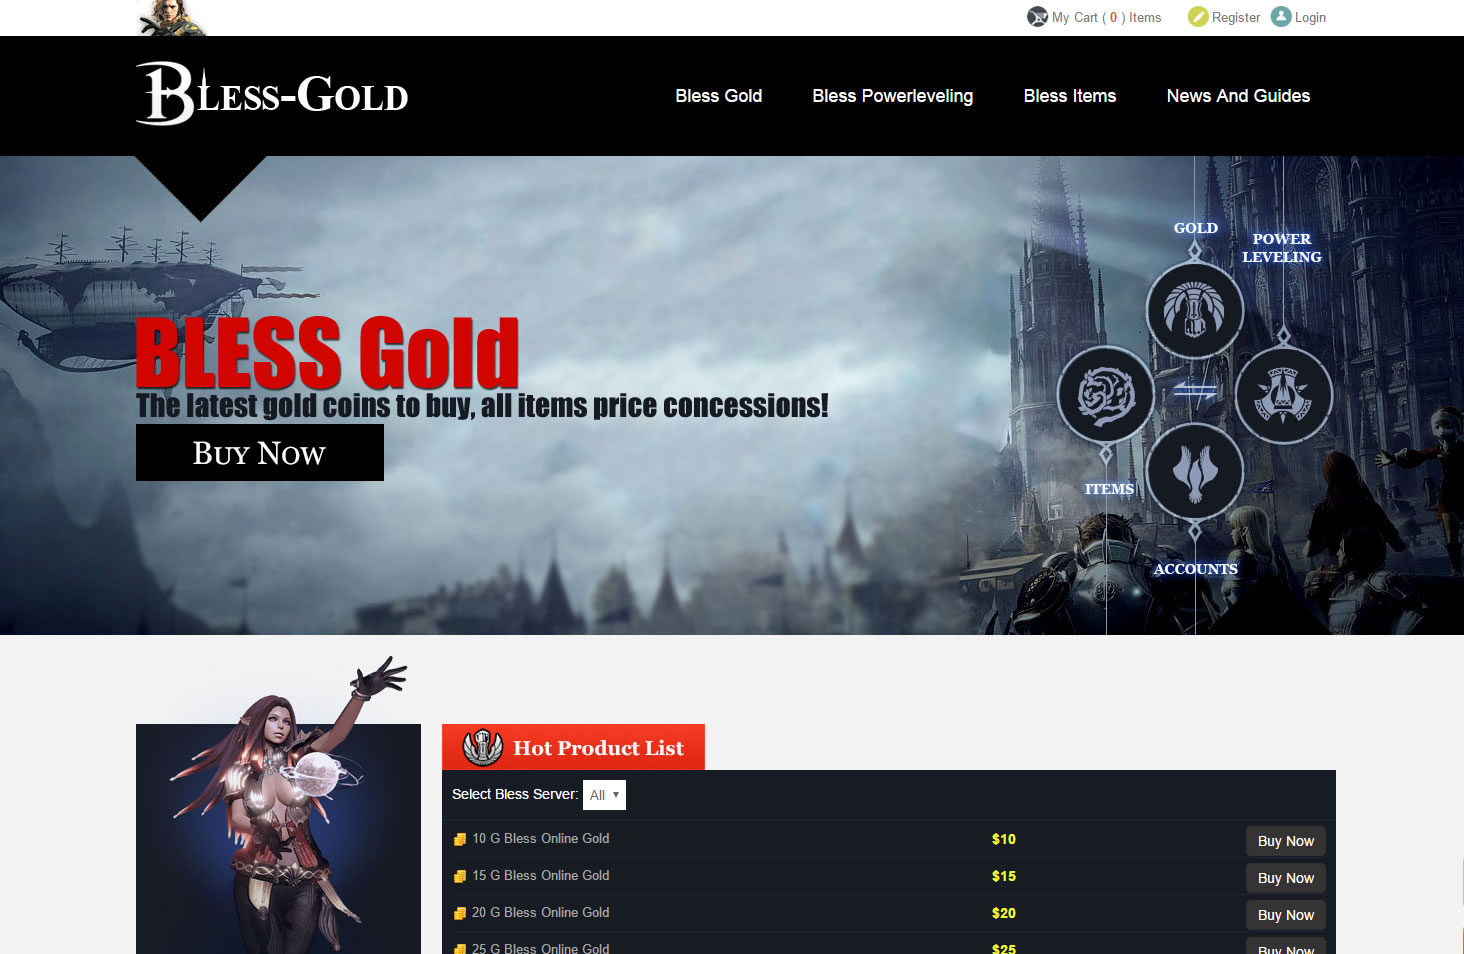 About Bless-Gold.com